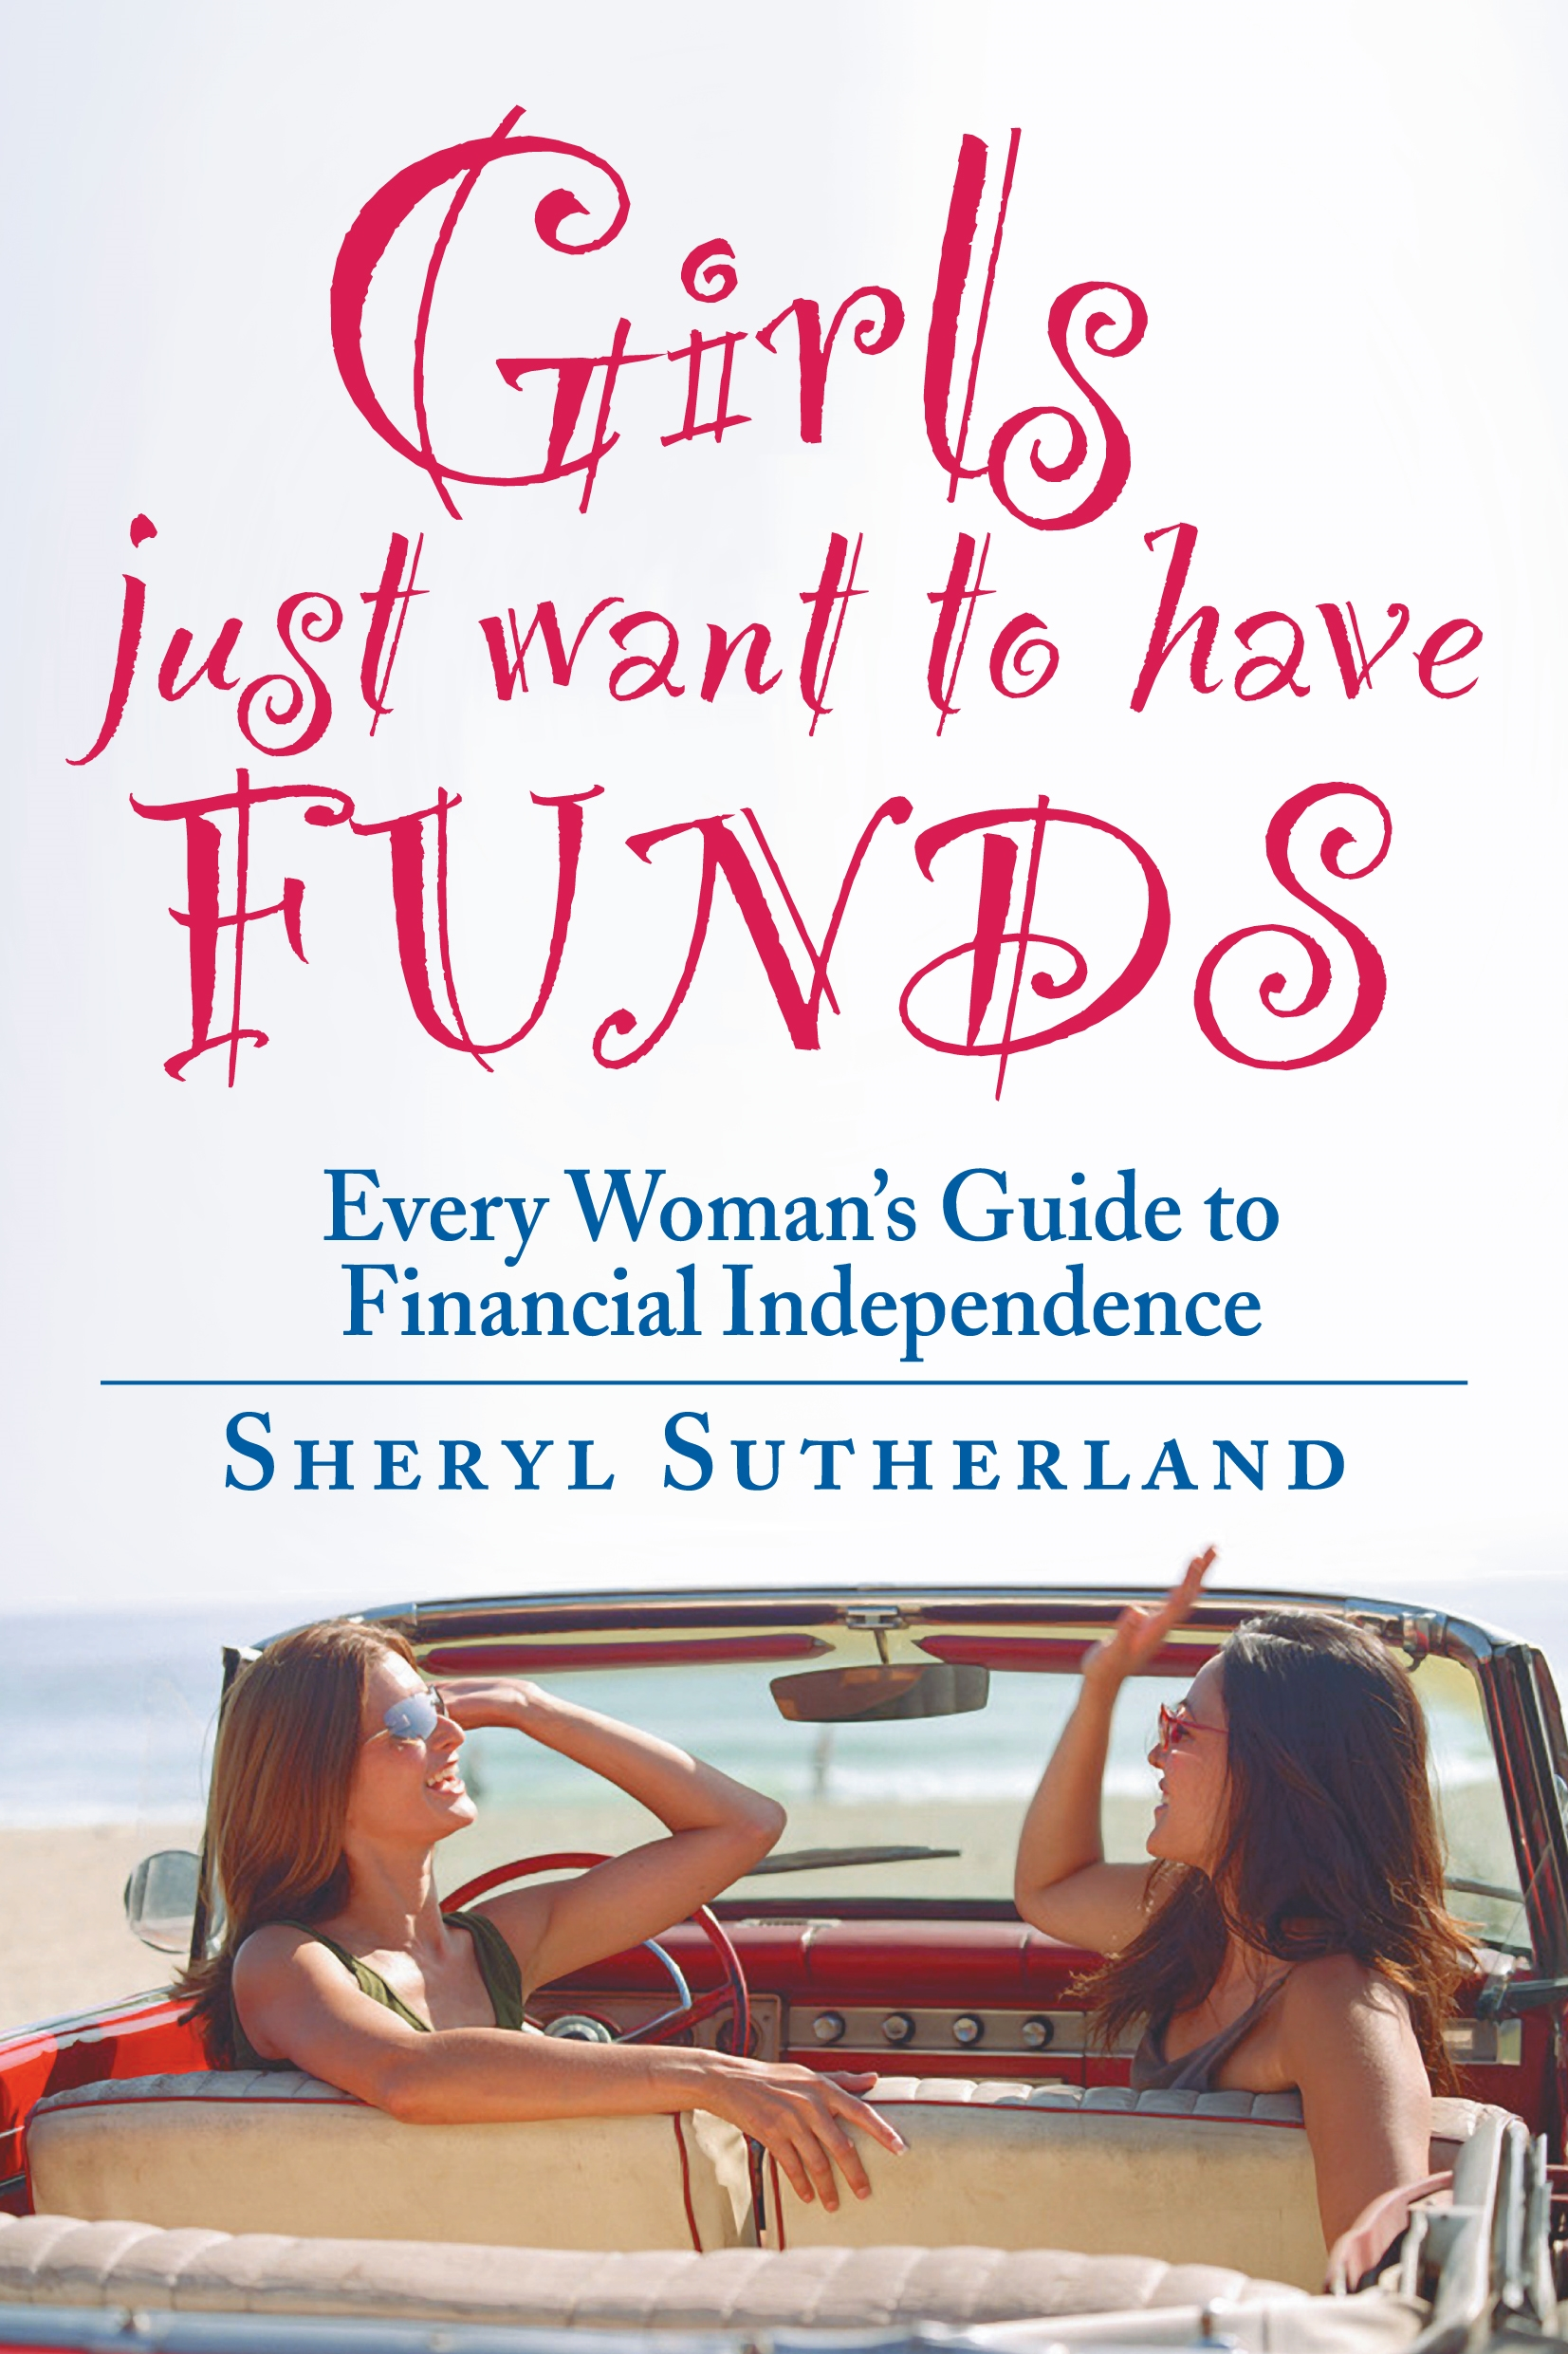 Girls Just Want To Have Funds A Woman's Guide to Financial Independence